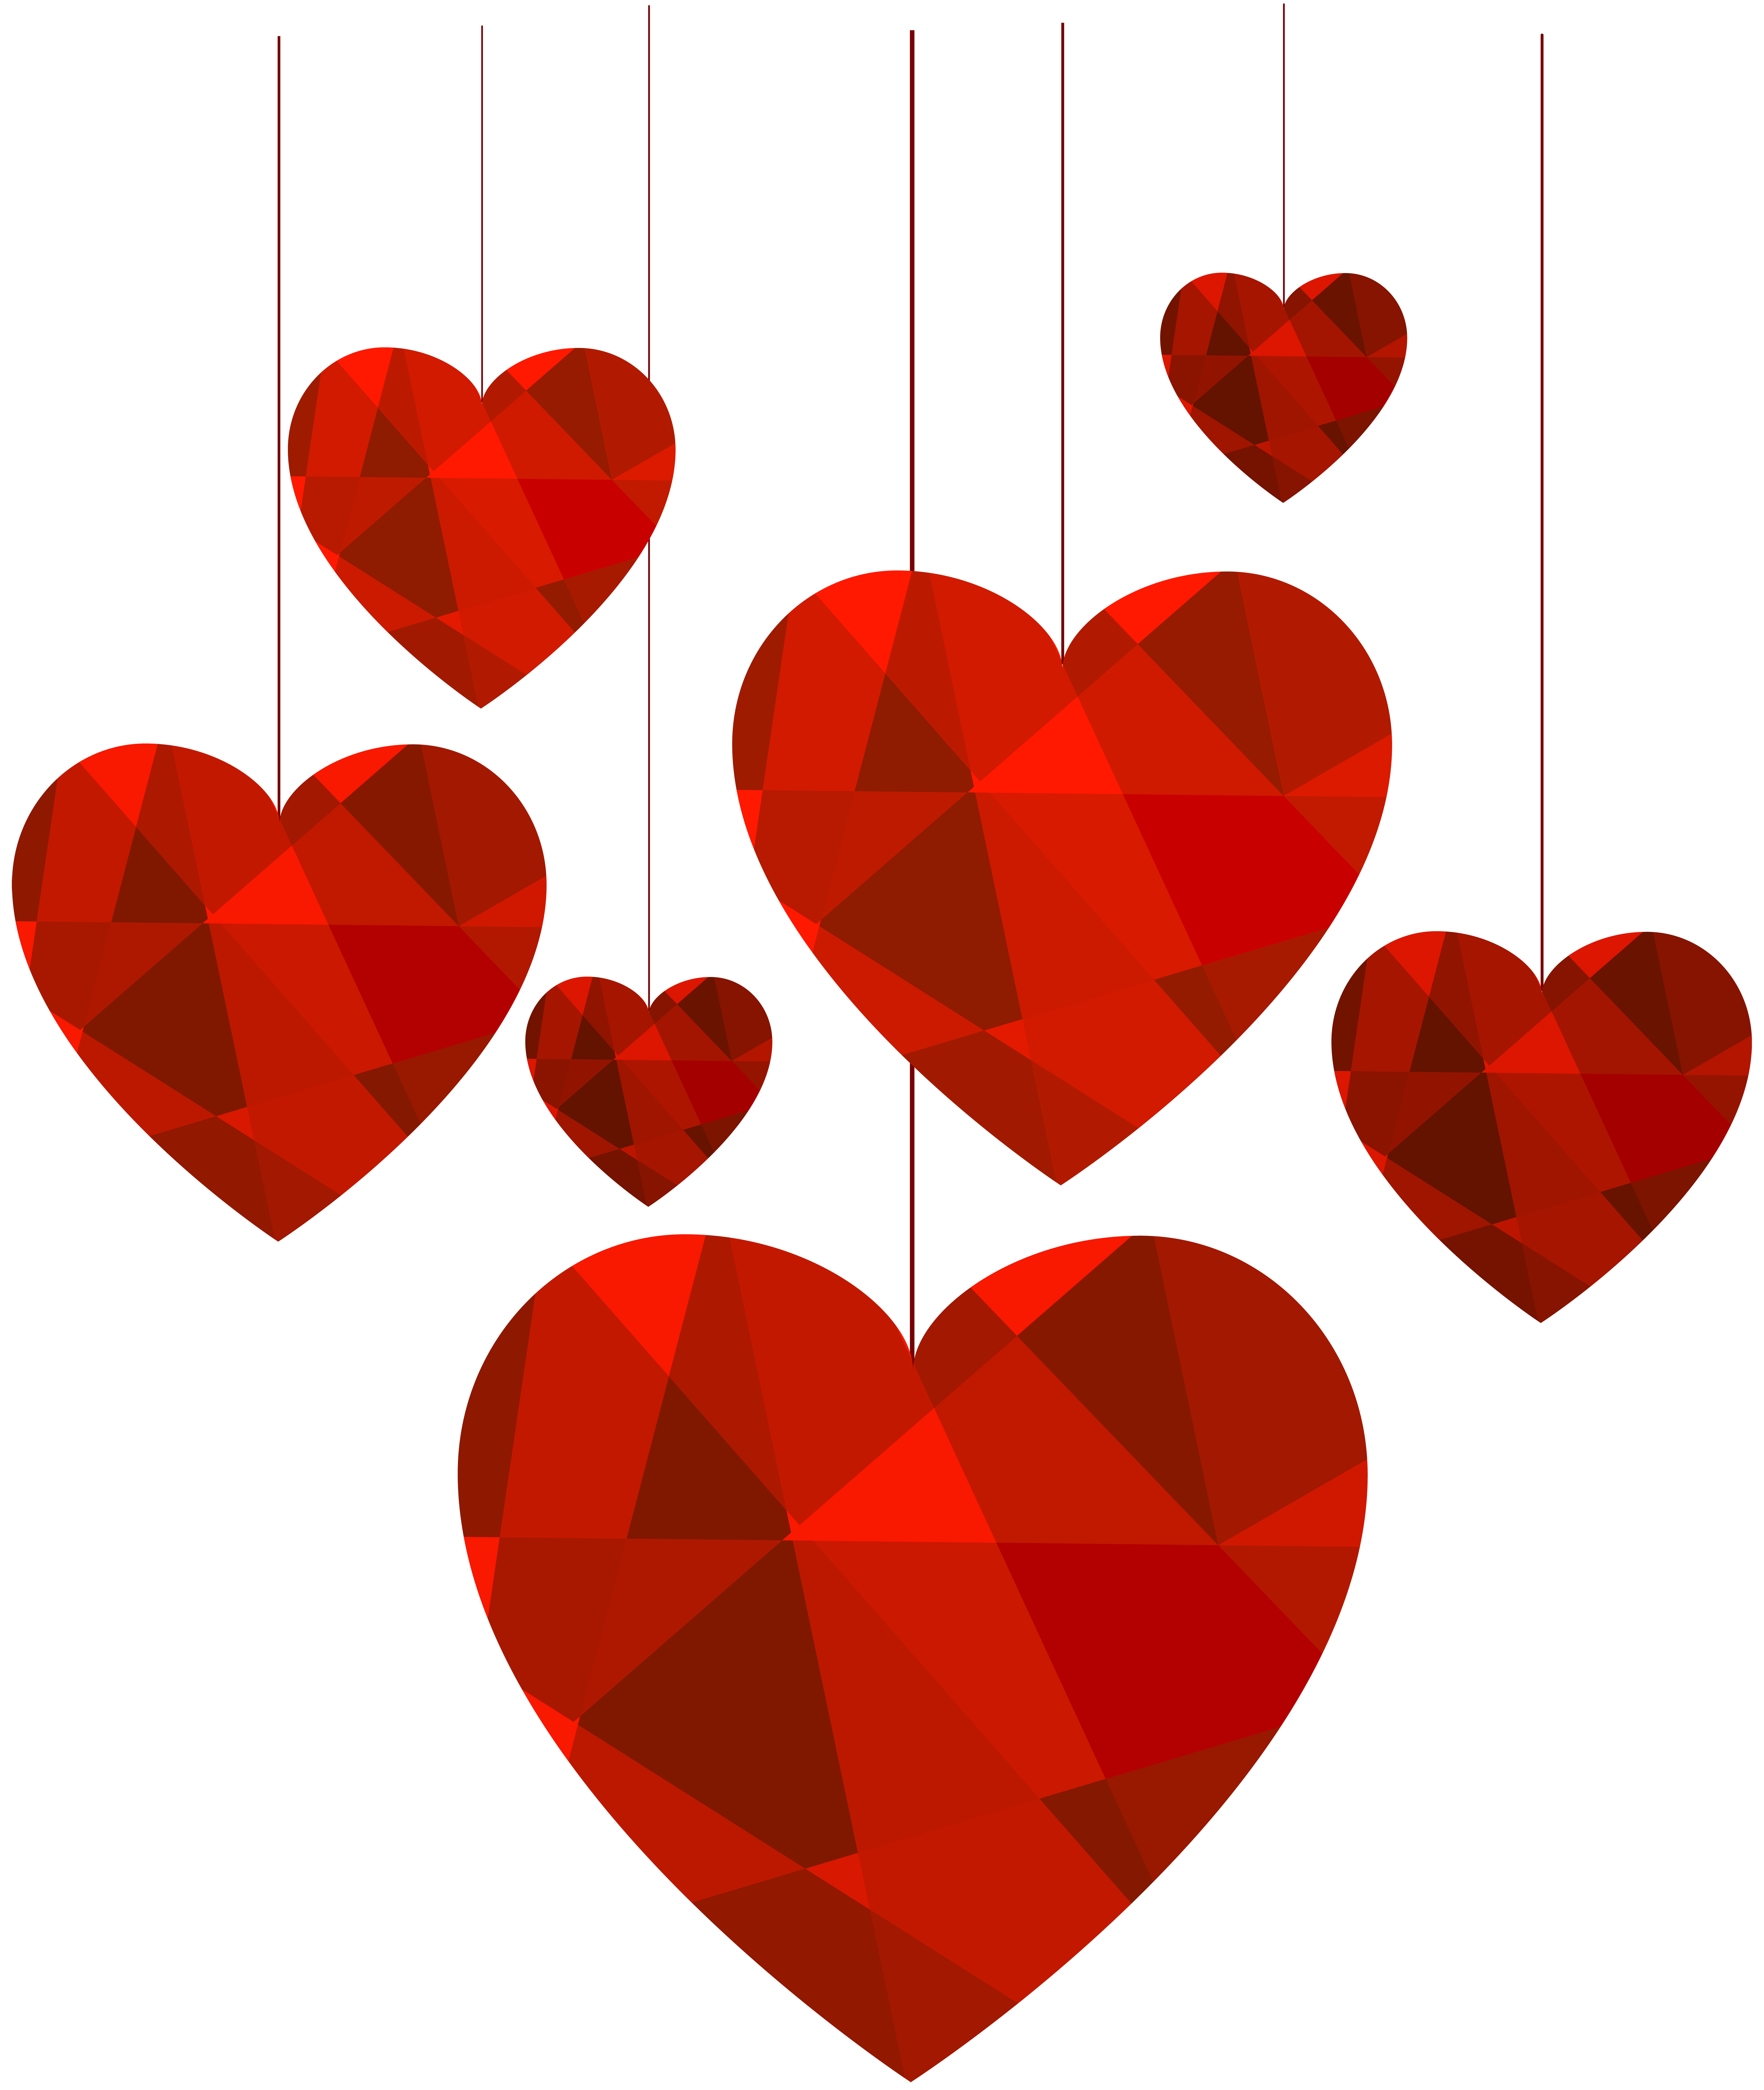 Hanging heart clipart vector download Hanging Hearts Transparent Clip Art Image | Gallery Yopriceville ... vector download